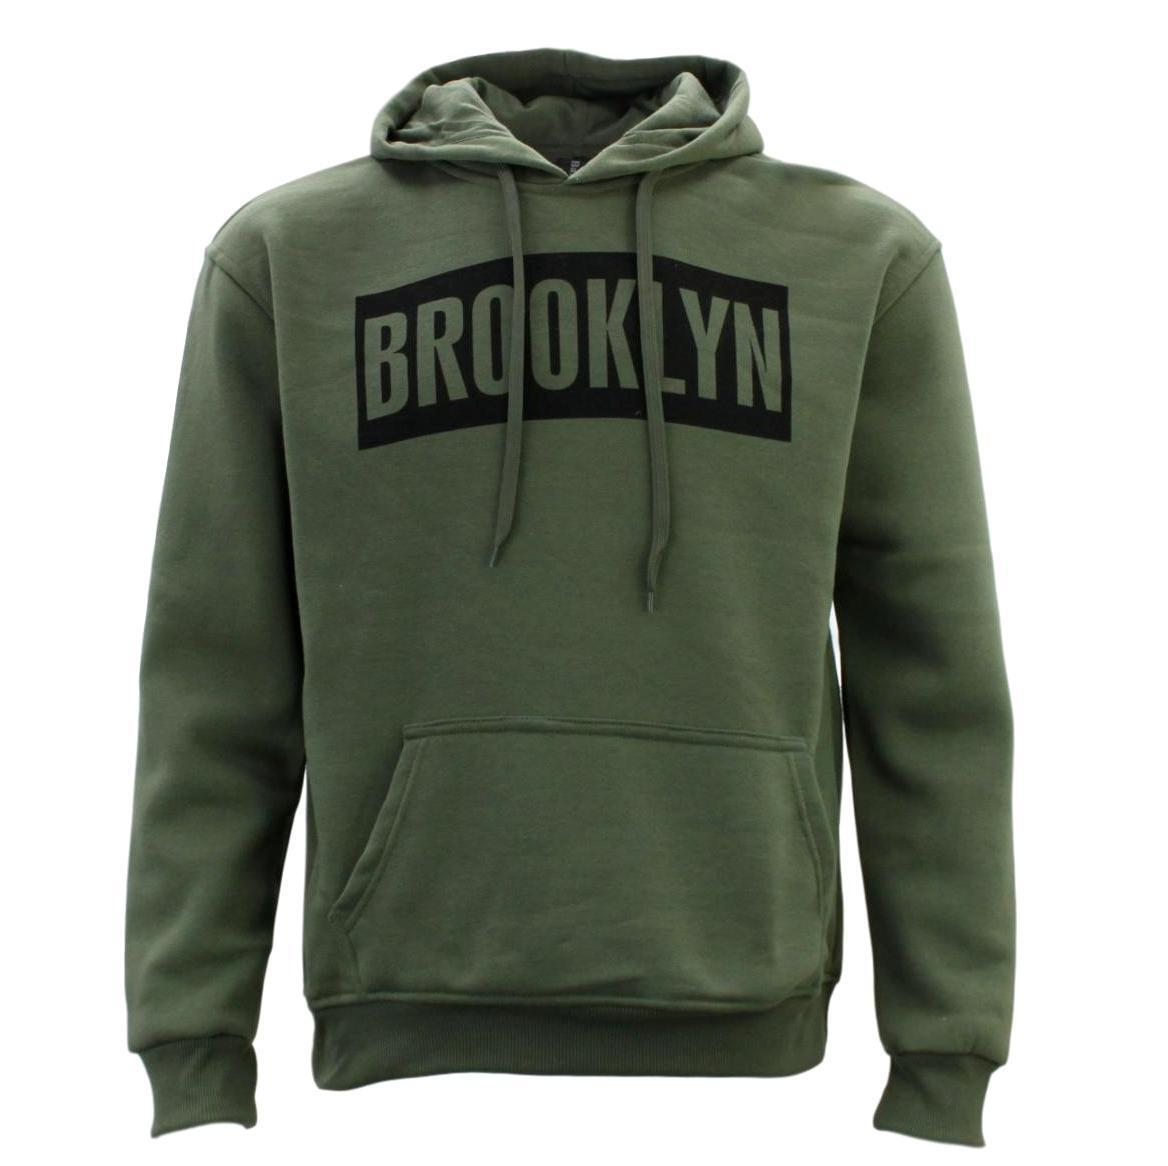 Adult-Men-039-s-Unisex-Hoodie-Hooded-Jumper-Pullover-Women-039-s-Sweater-BROOKLYN thumbnail 29